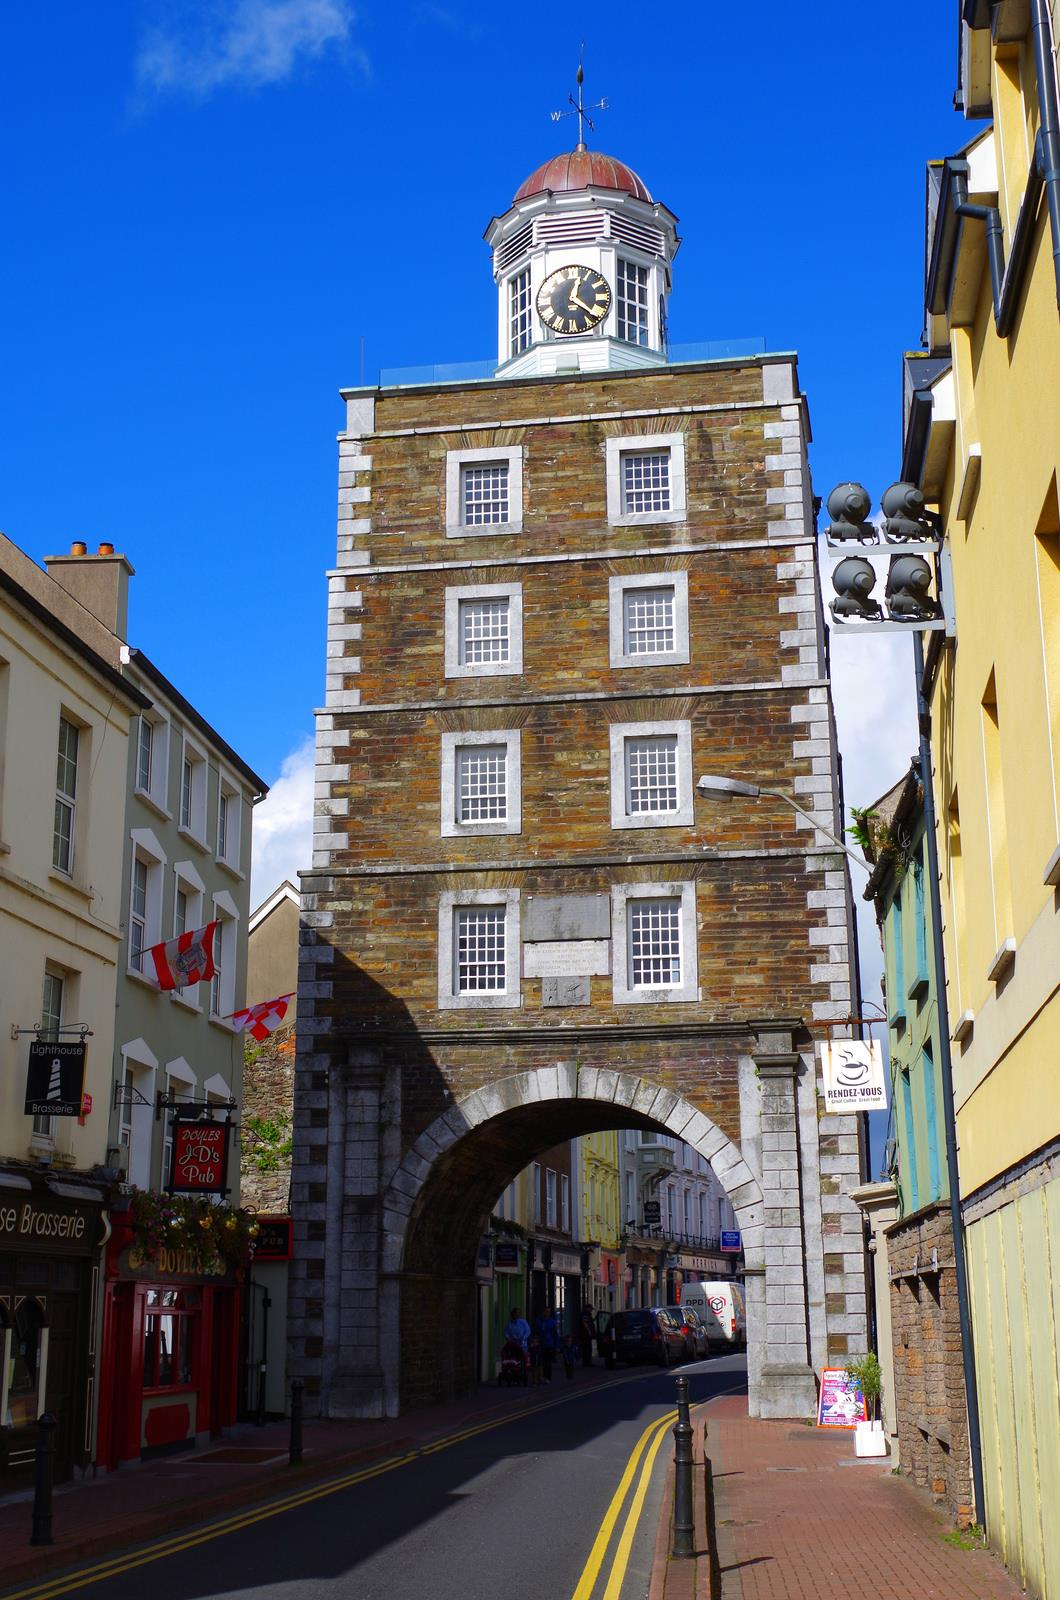 Youghal & Cobh to benefit from Ireland's Ancient East Funding